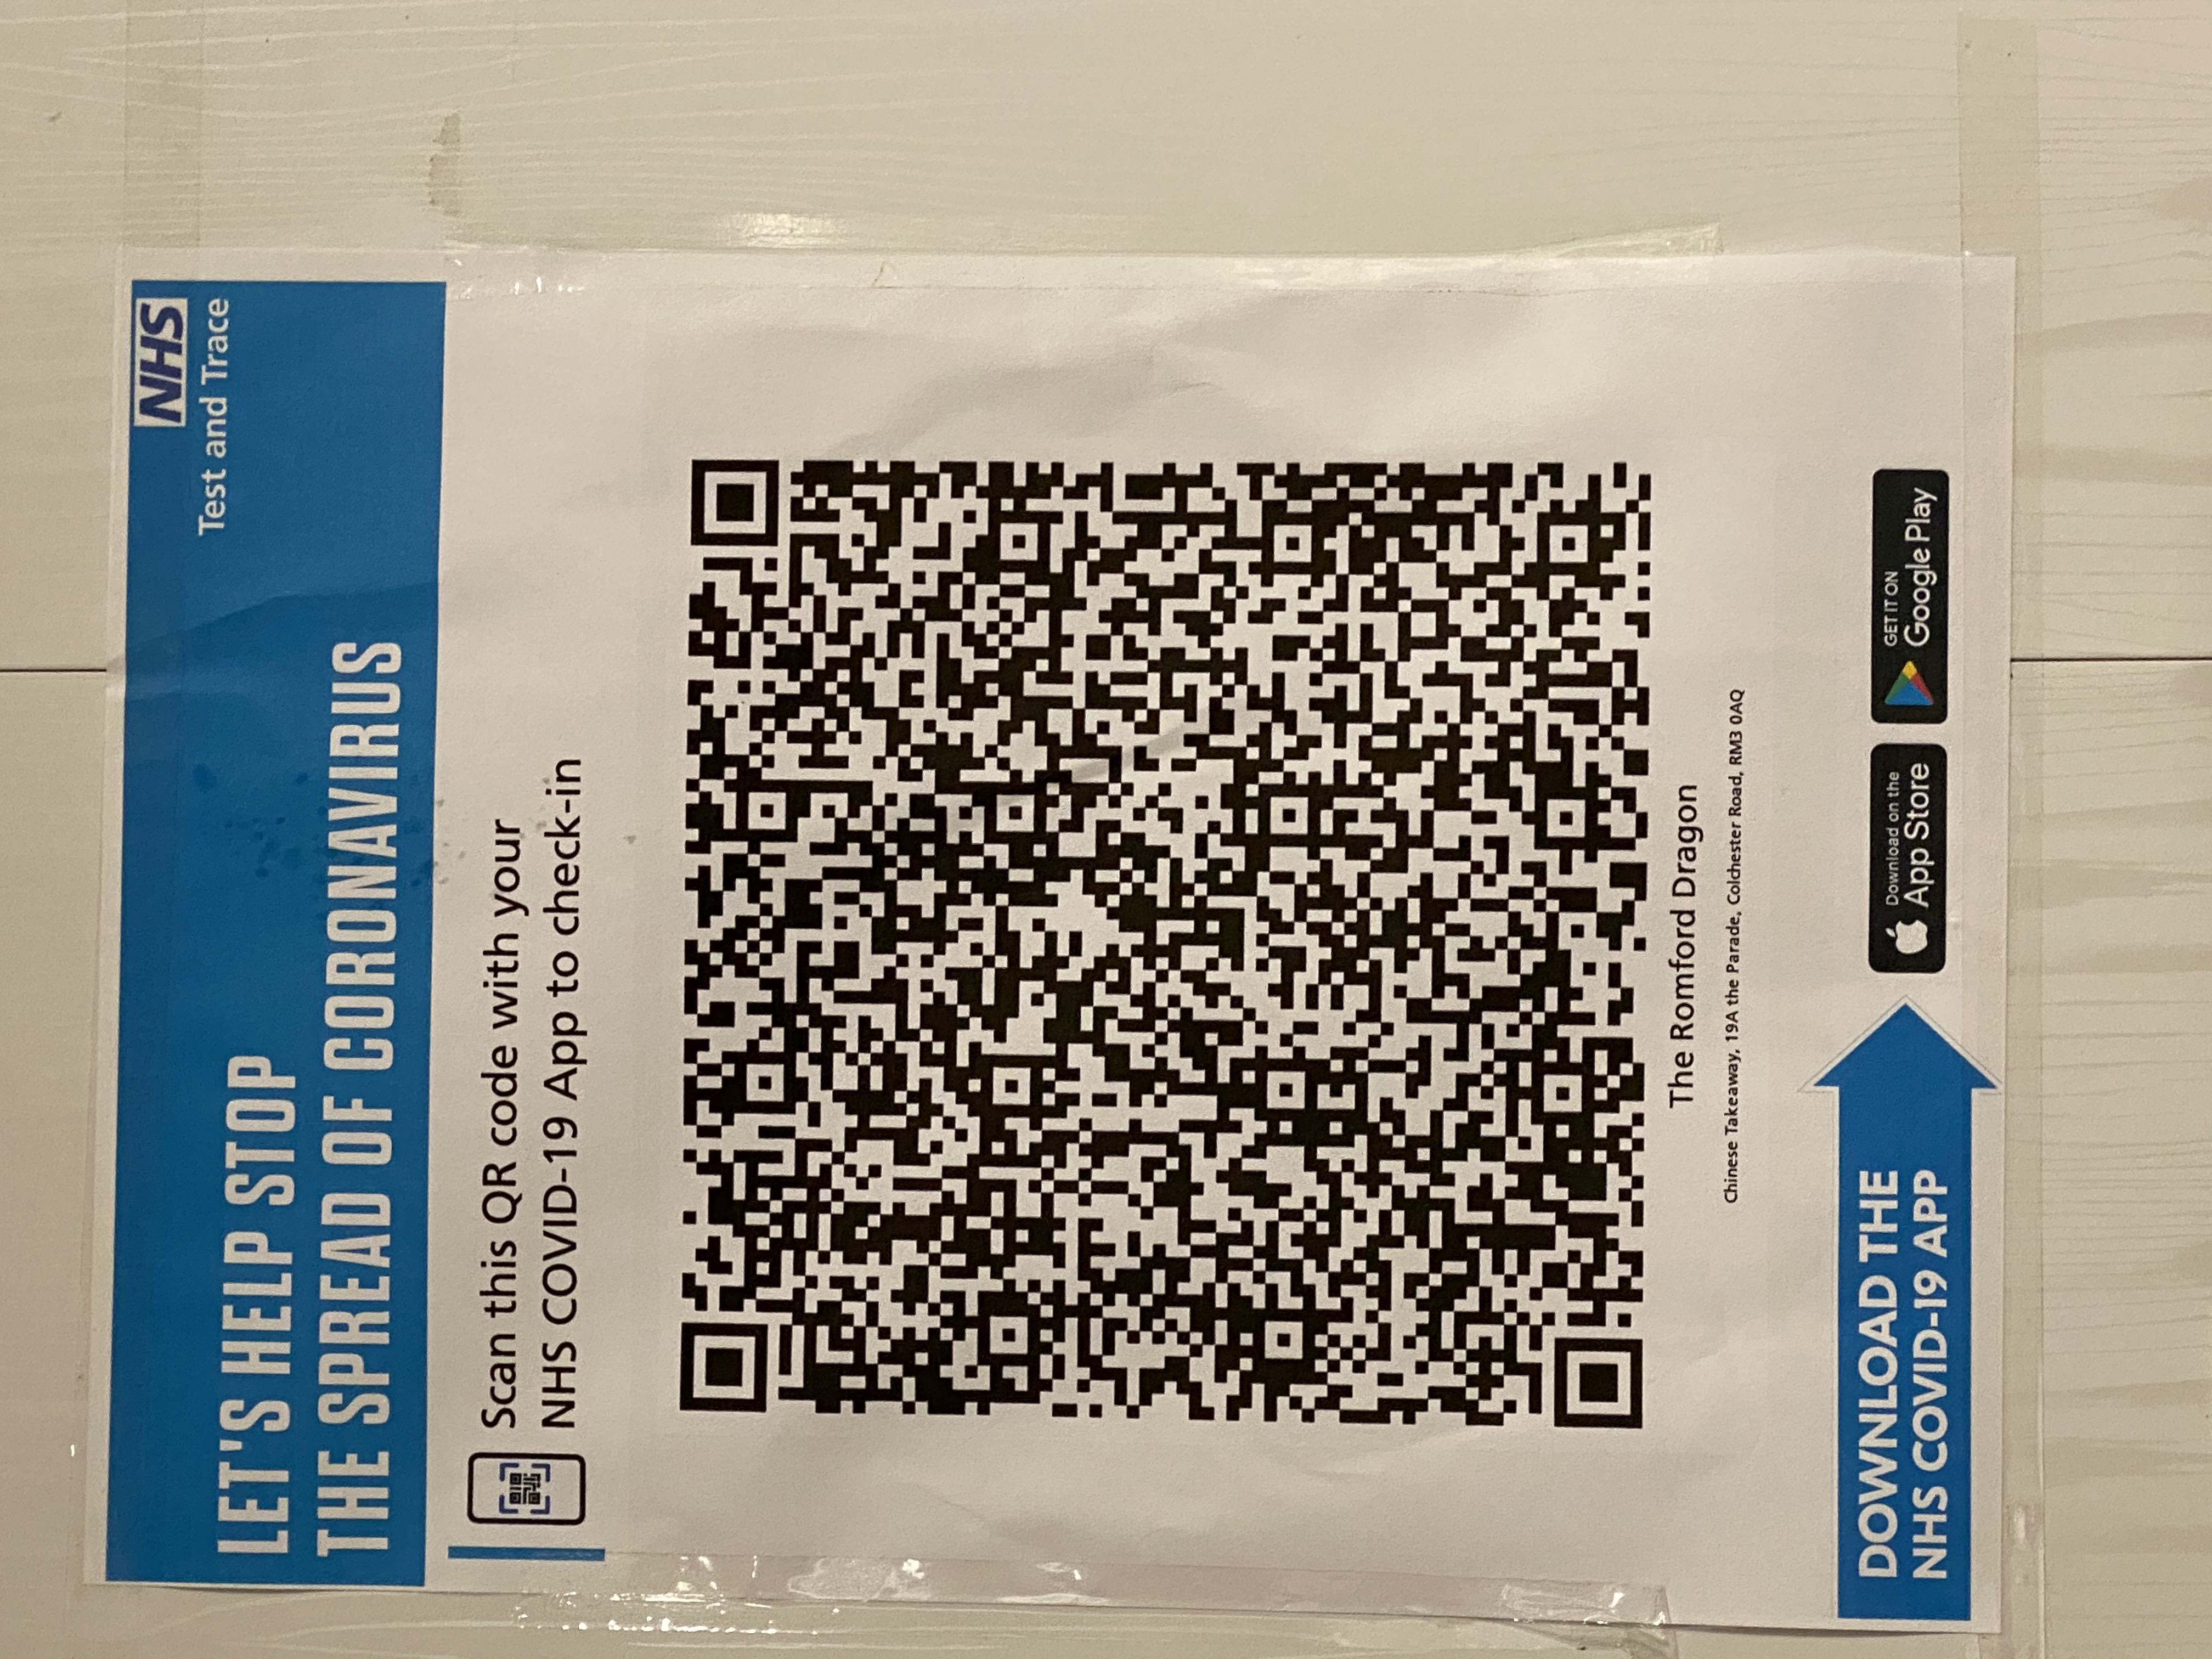 The printout of the NHS sign on a wall. It shows a QR code along with the text: